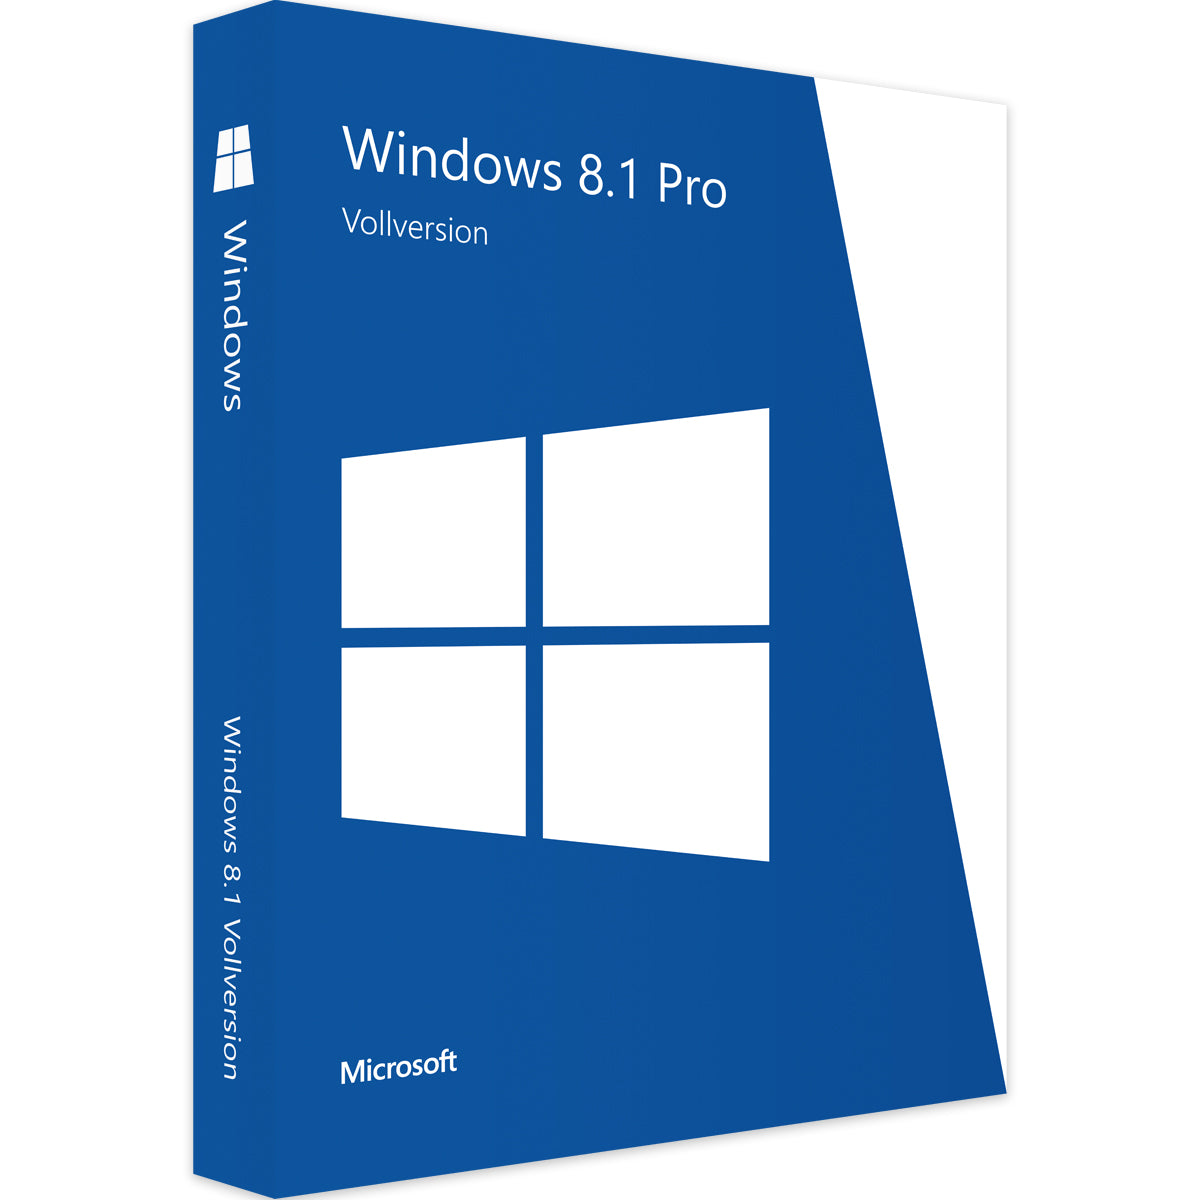 Microsoft Windows 8.1 Professional - Software-Markt data-zoom=